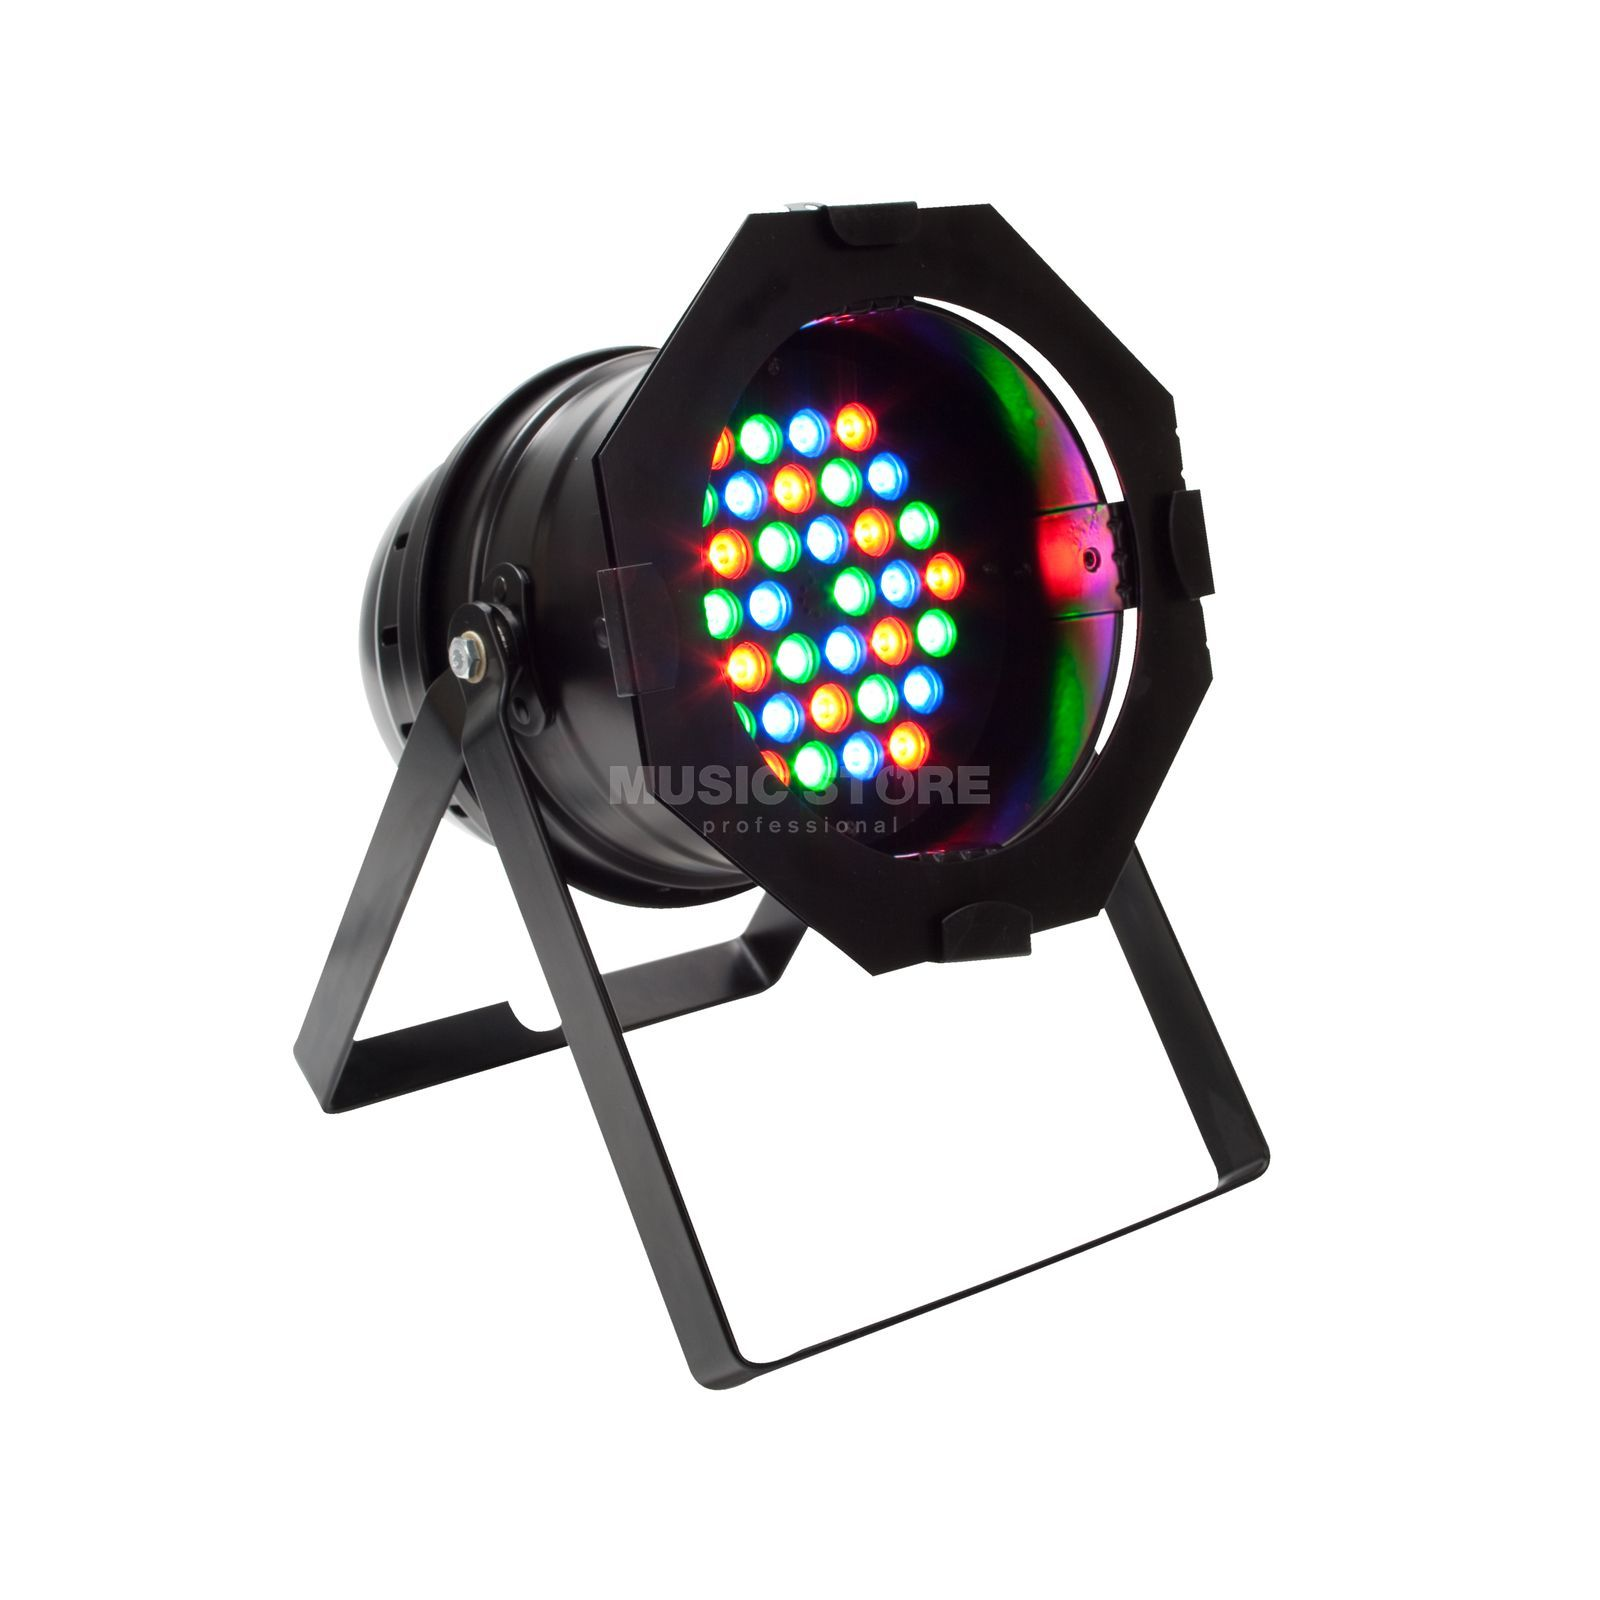 lightmaXX LED PAR 64 HP black MKII 36x 1W RGB LEDs Produktbild